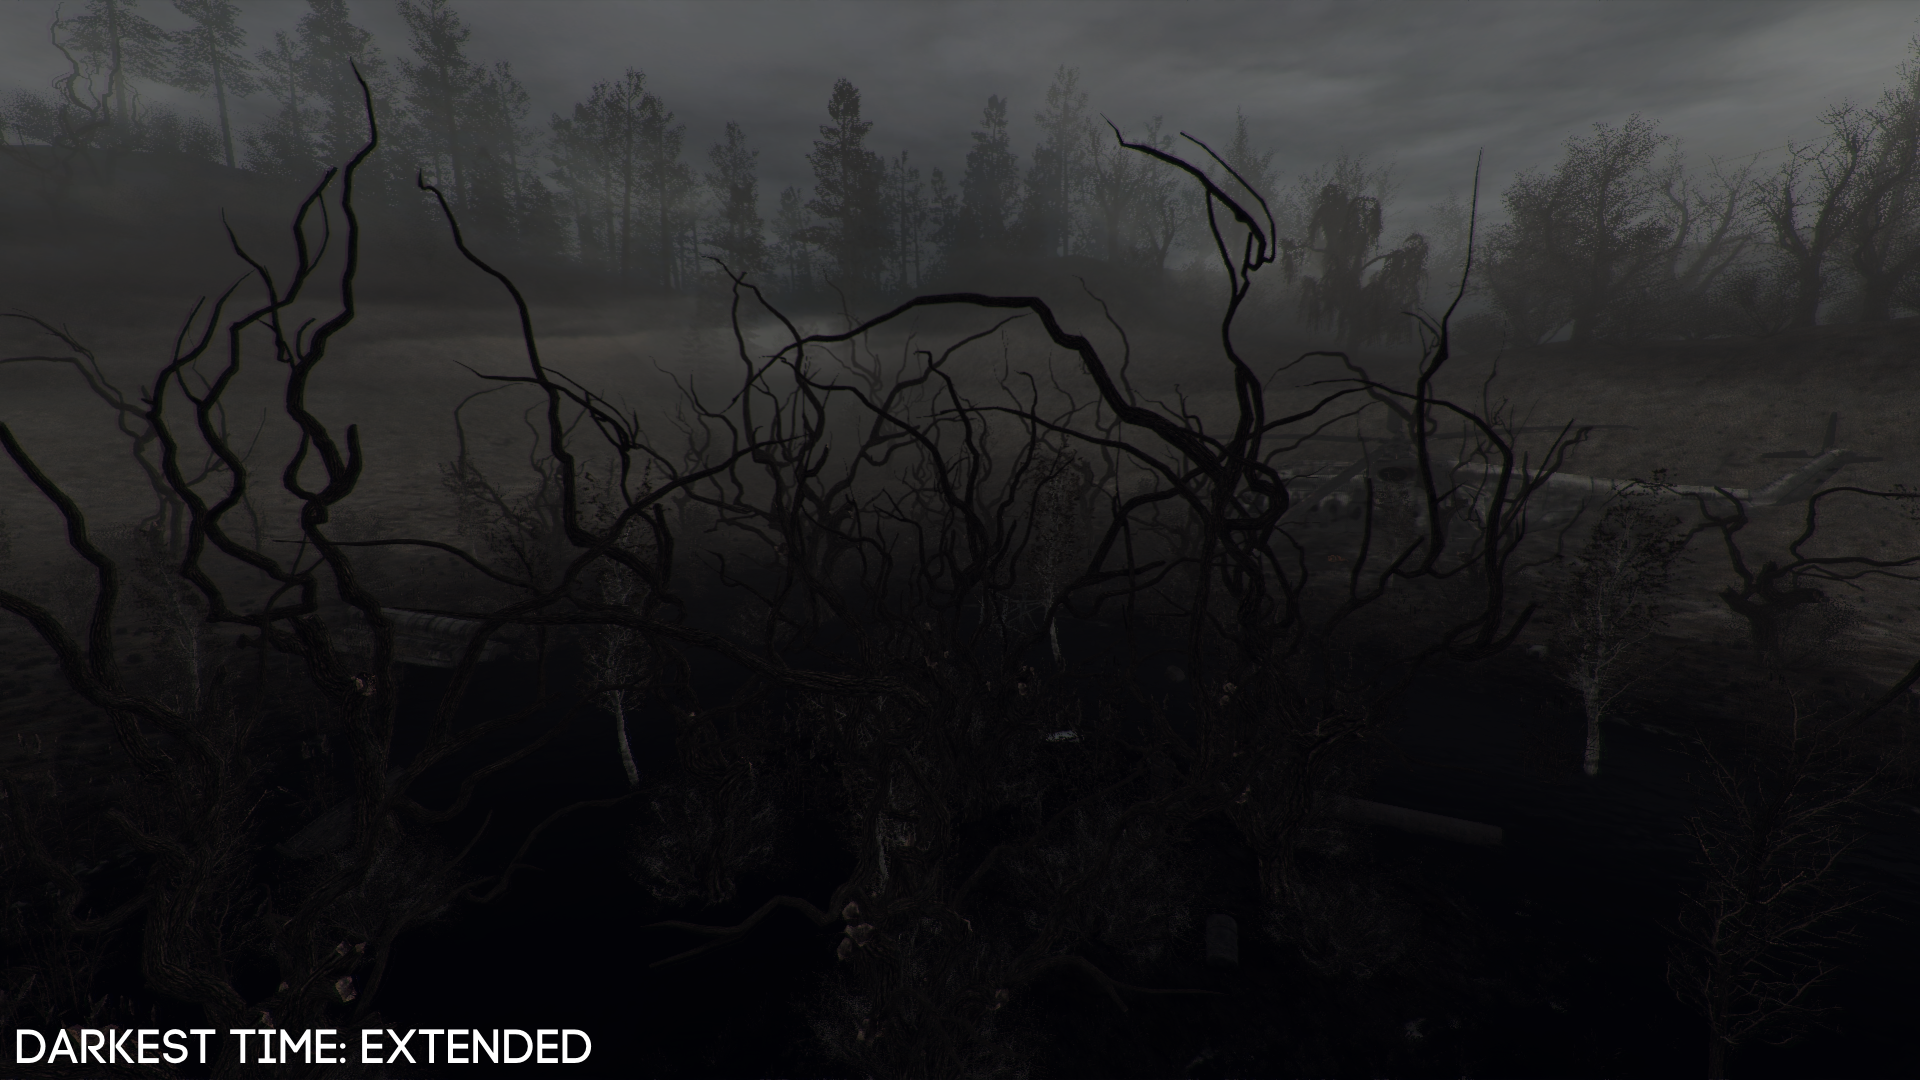 S.T.A.L.K.E.R.: Shadow of Chernobyl - Darkest Time: Extended [1.0.56] (2018/PC/Русский), Repack от SeregA-Lus